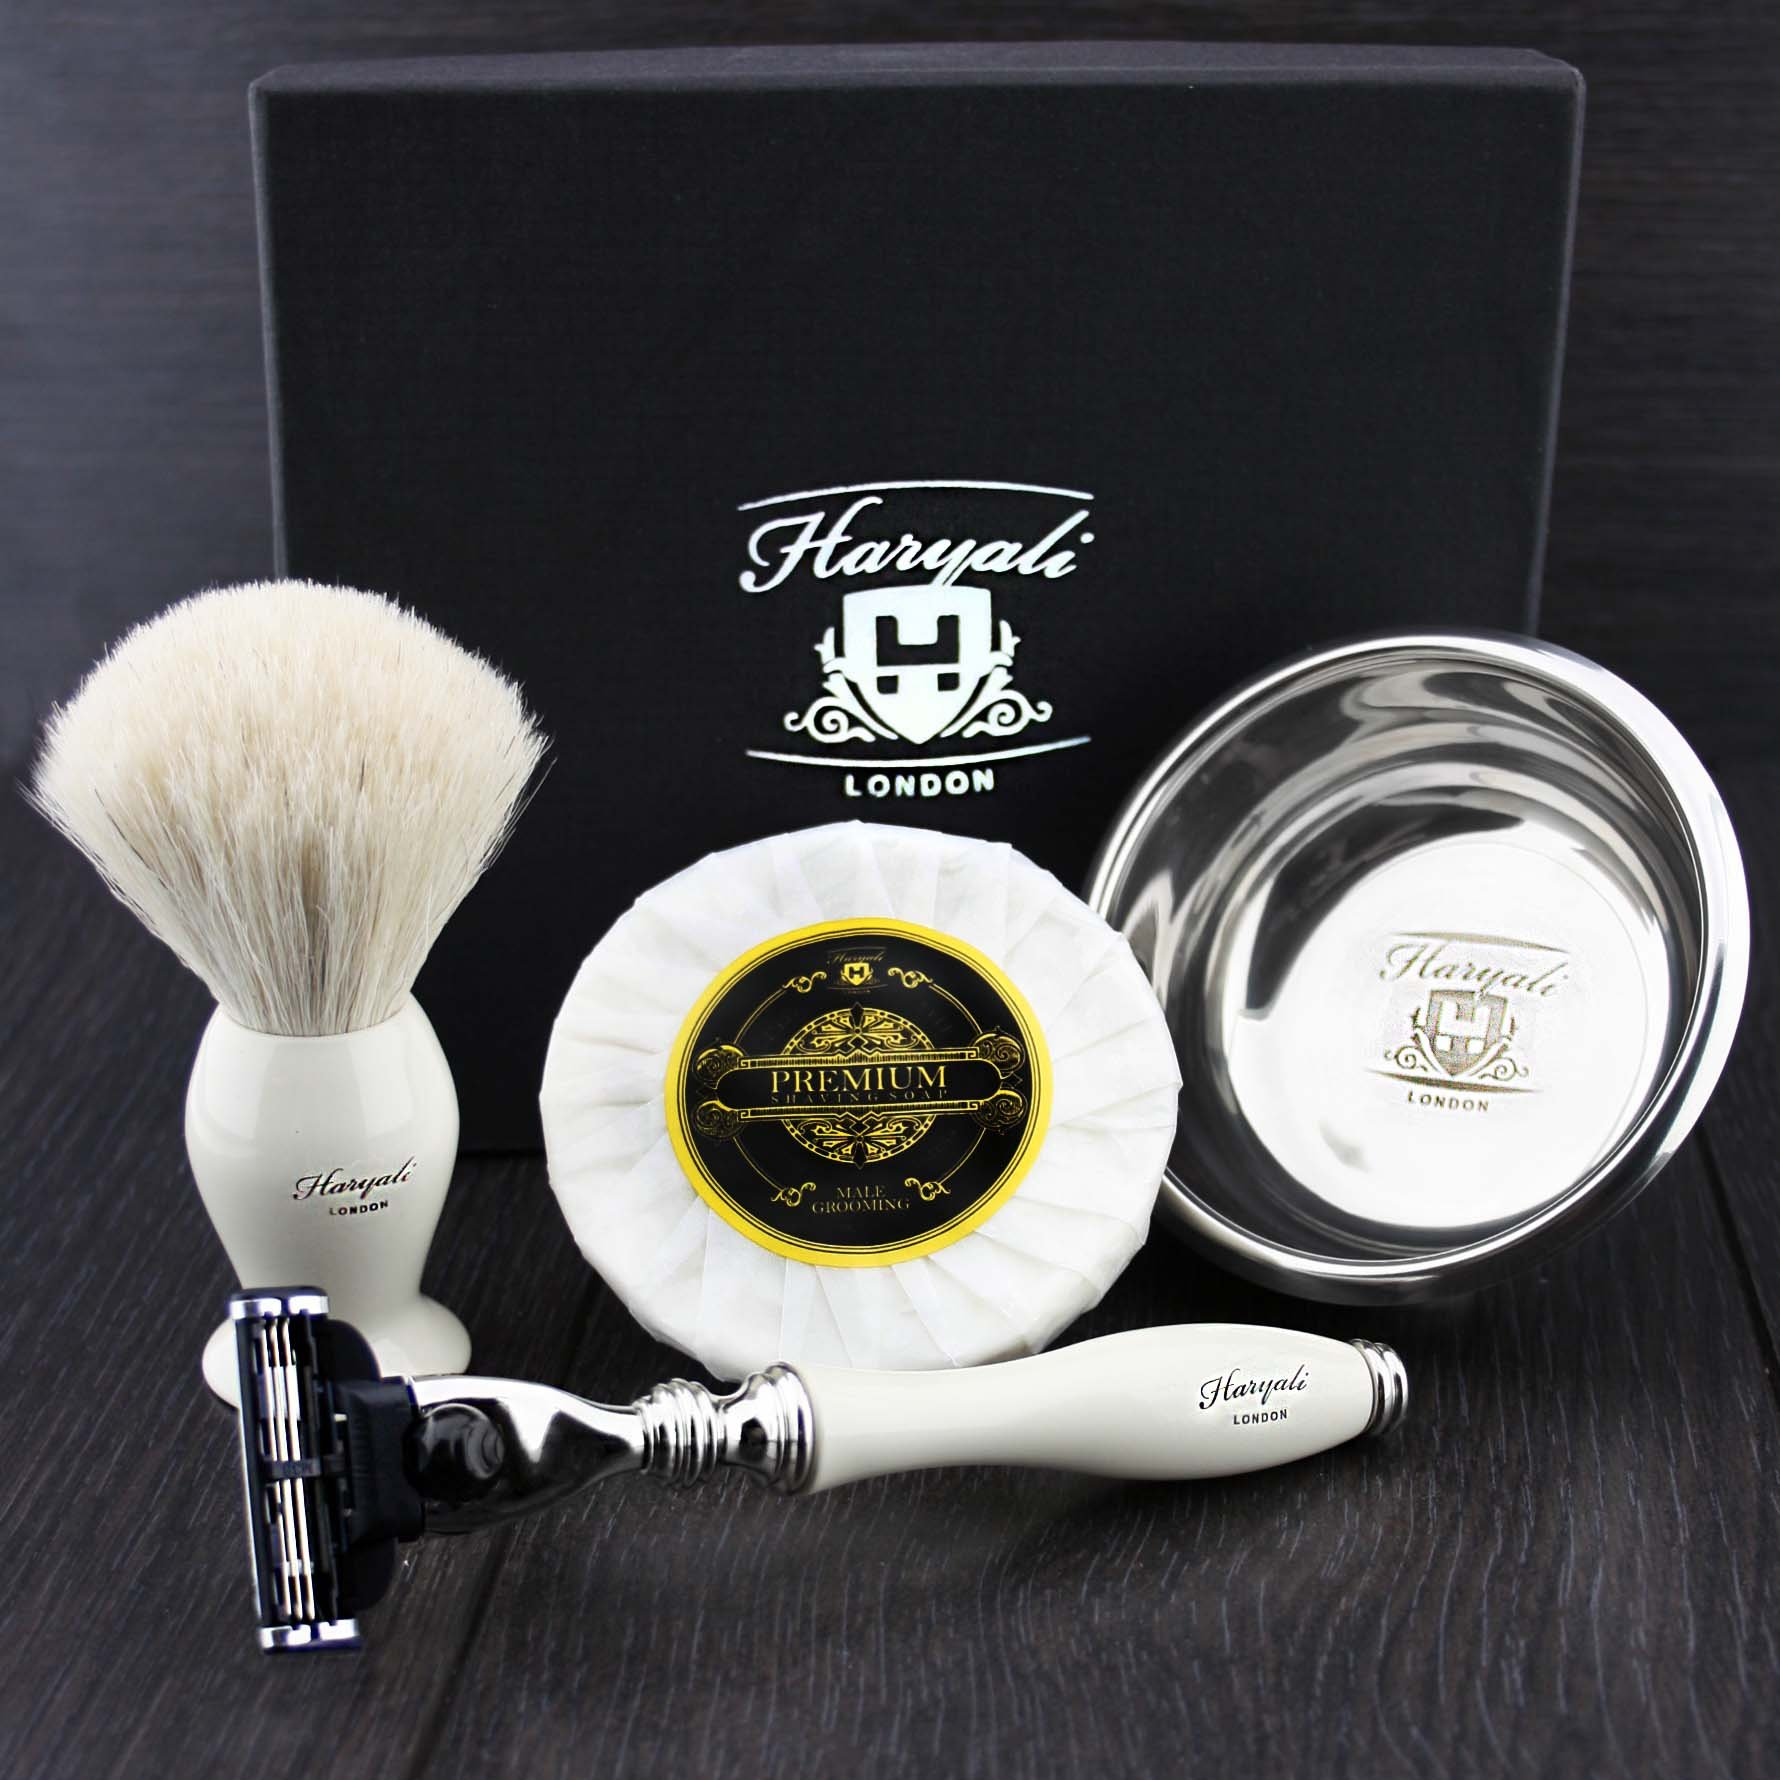 White Badger Hair Men's Shaving Set In Ivory with Gillette Mach 3 razor,Soap & Bowl. Perfect Set for Every Day Use.